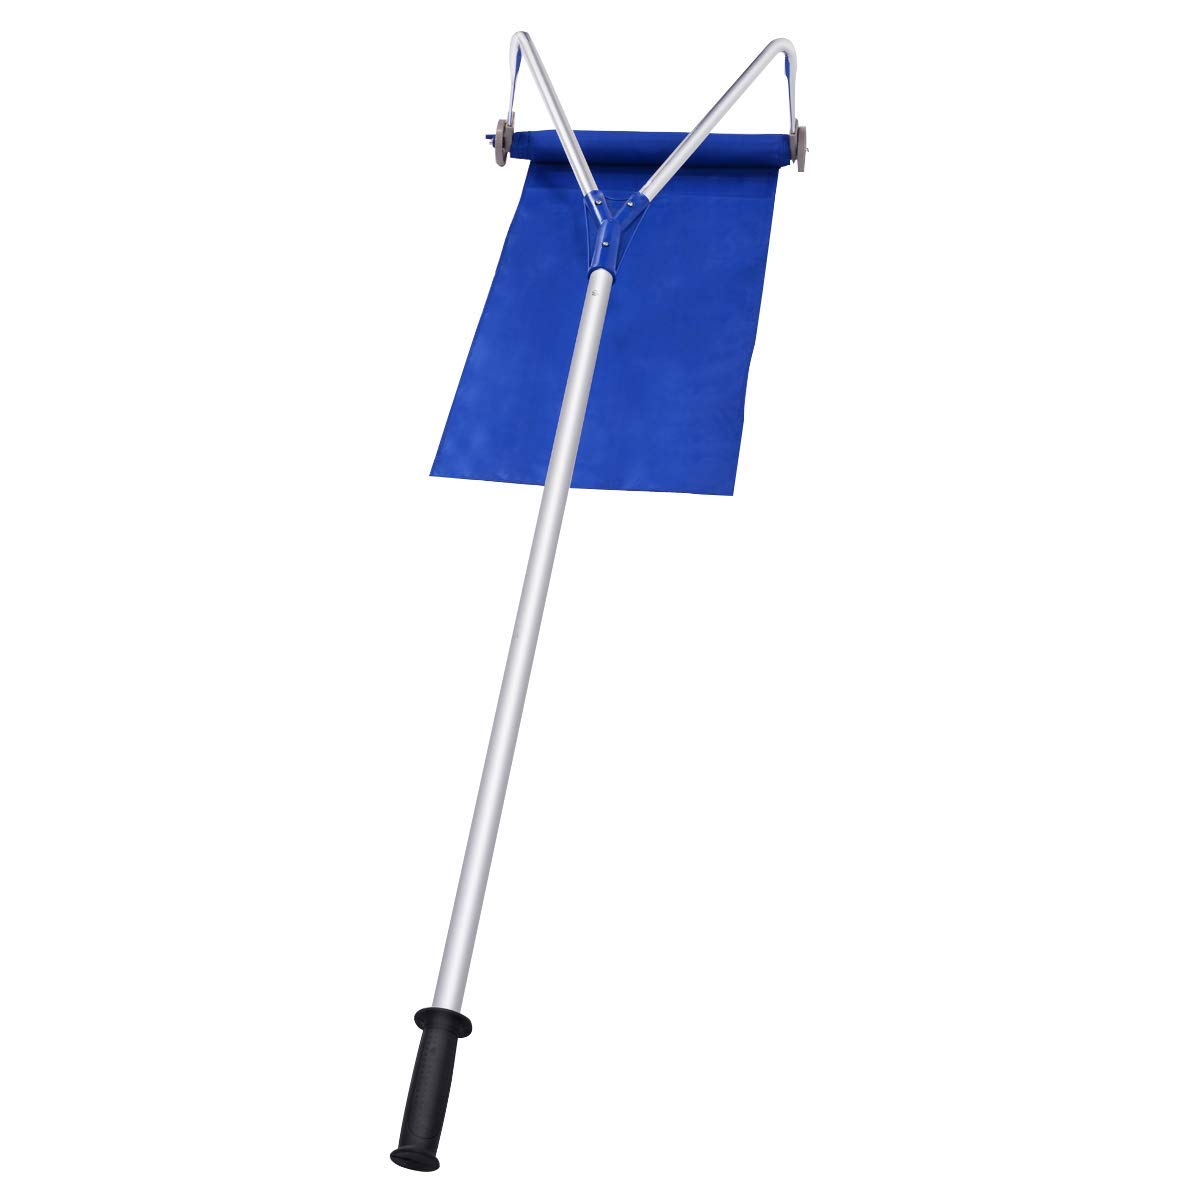 QWE Roof Snow Rake Removal Tool 20 Ft with Adjustable Telescoping Handle Will Relieve Your House of The Heavy Snow Relieves Your Back of Any Strenuous Difficult Work